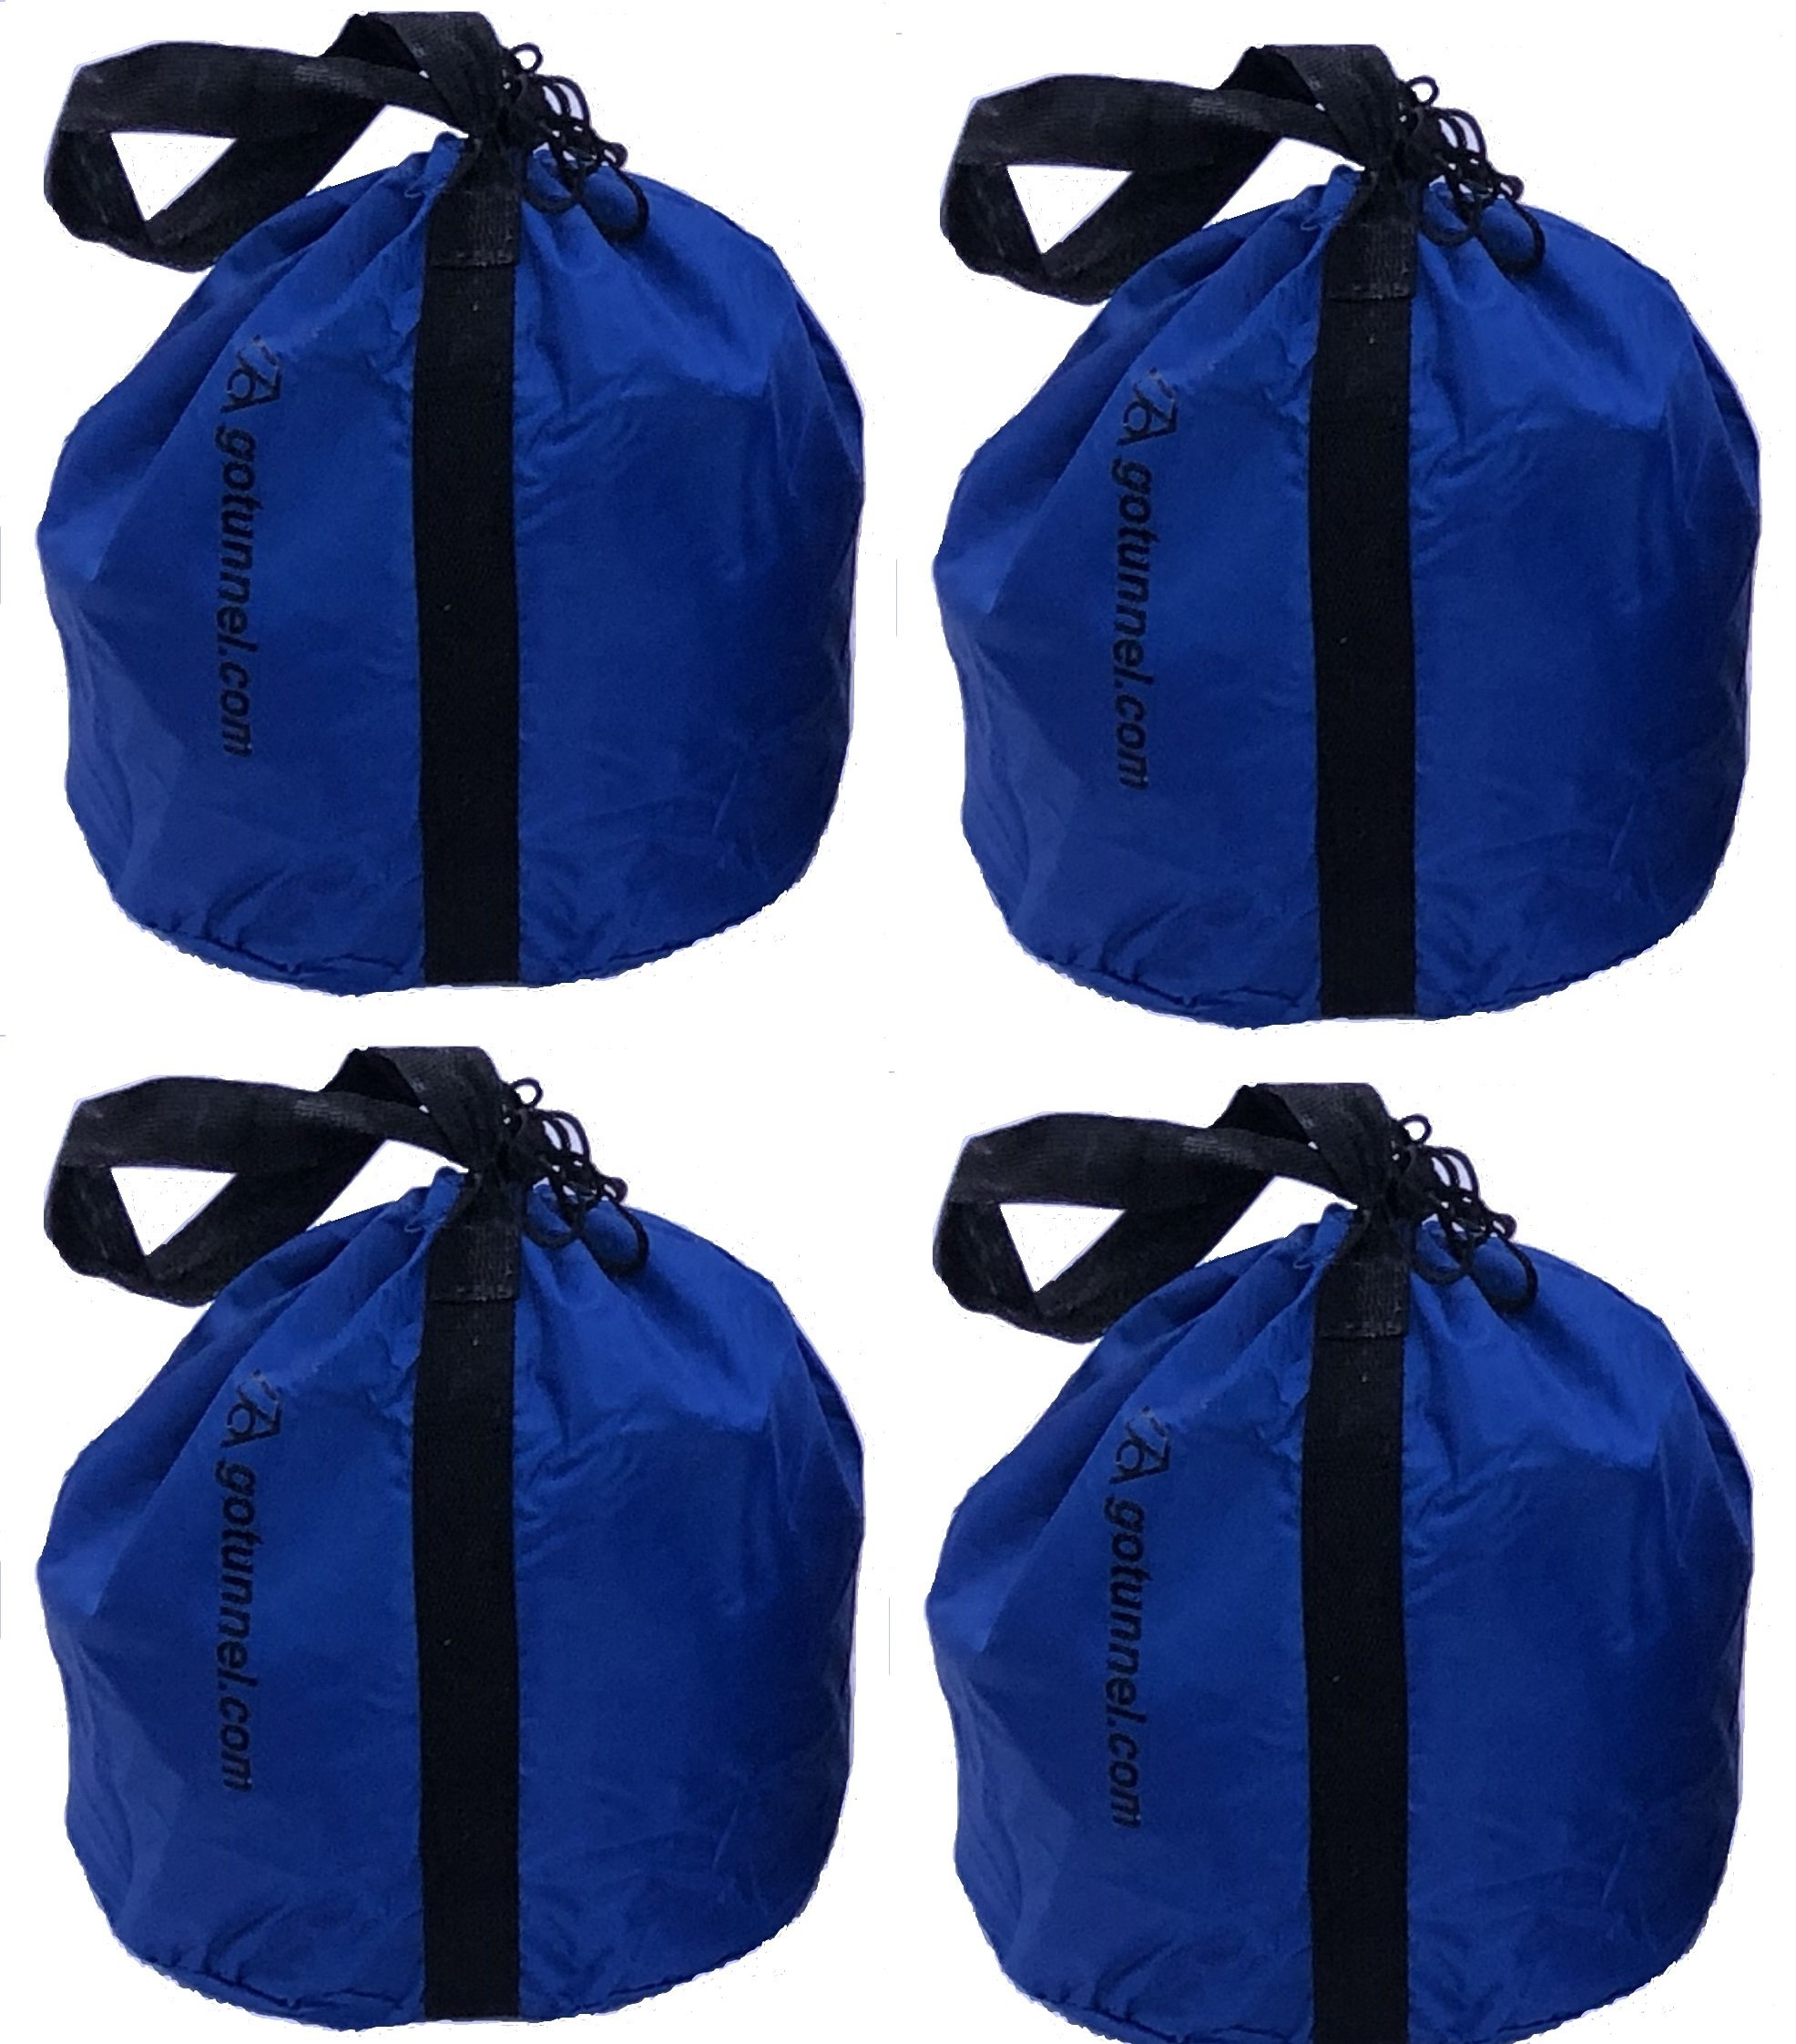 Economy Sand Bag Anchor Bags (with Handles) - Weights for Dog Agility Tunnels, Soccer Goals, Tents, Canopies, Photography, Production Events, Mic Stands and Other Equipment - 4 Bag Set by gotunnel